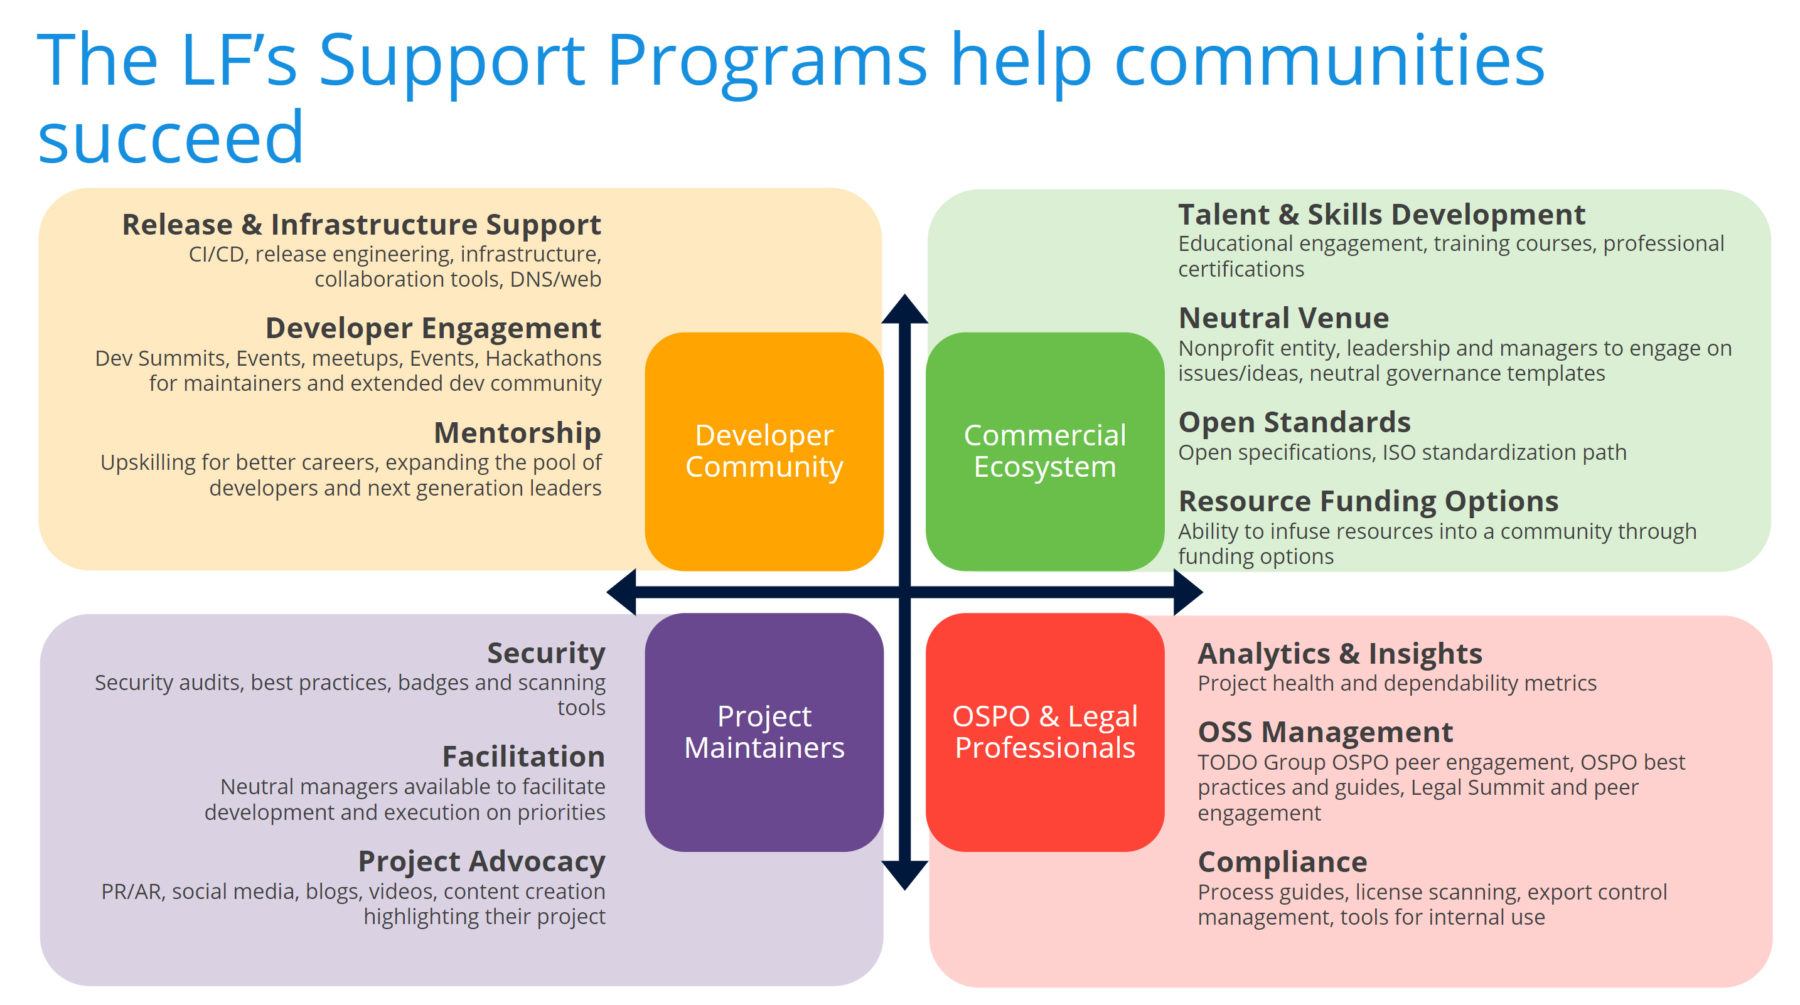 The portfolio of support programs that the Linux Foundation has developed to help its project communities